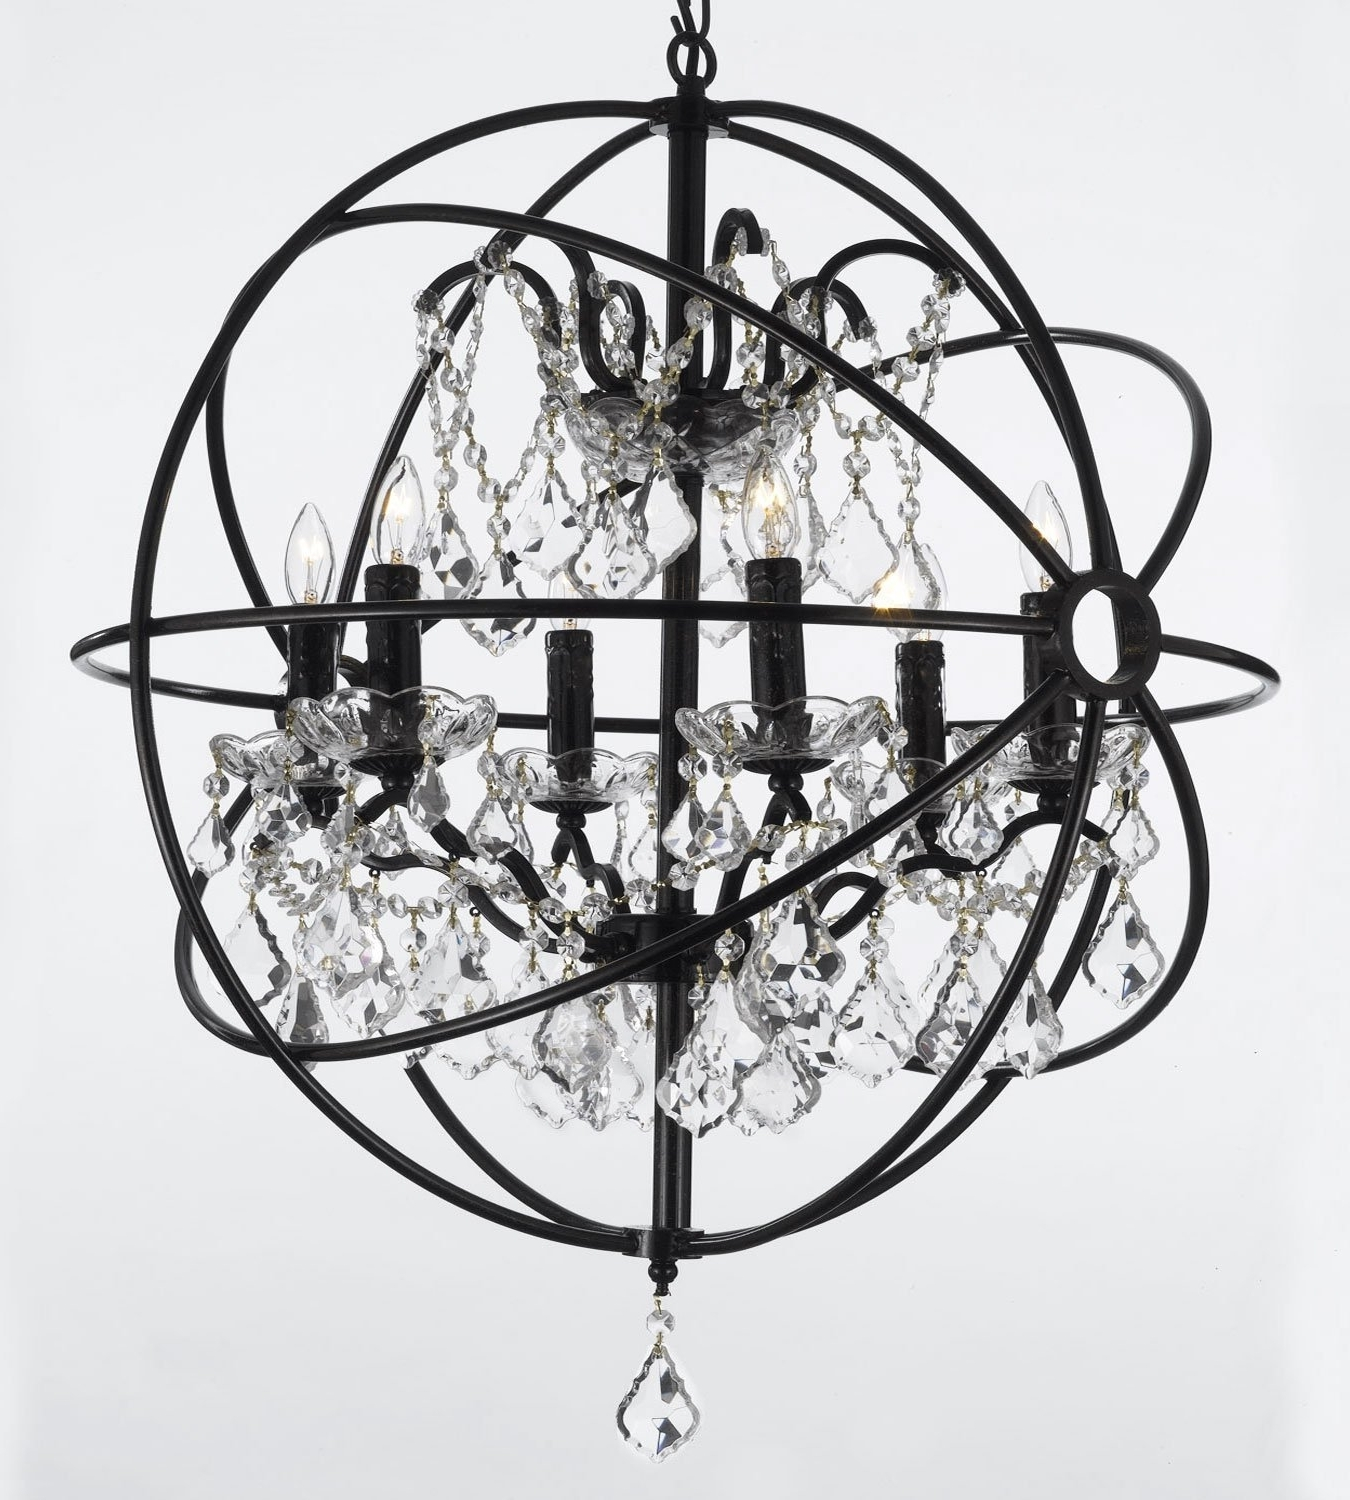 Trendy Wrought Iron Chandeliers Pertaining To Foucault's Orb Wrought Iron Crystal Chandelier Lighting Country (View 10 of 15)